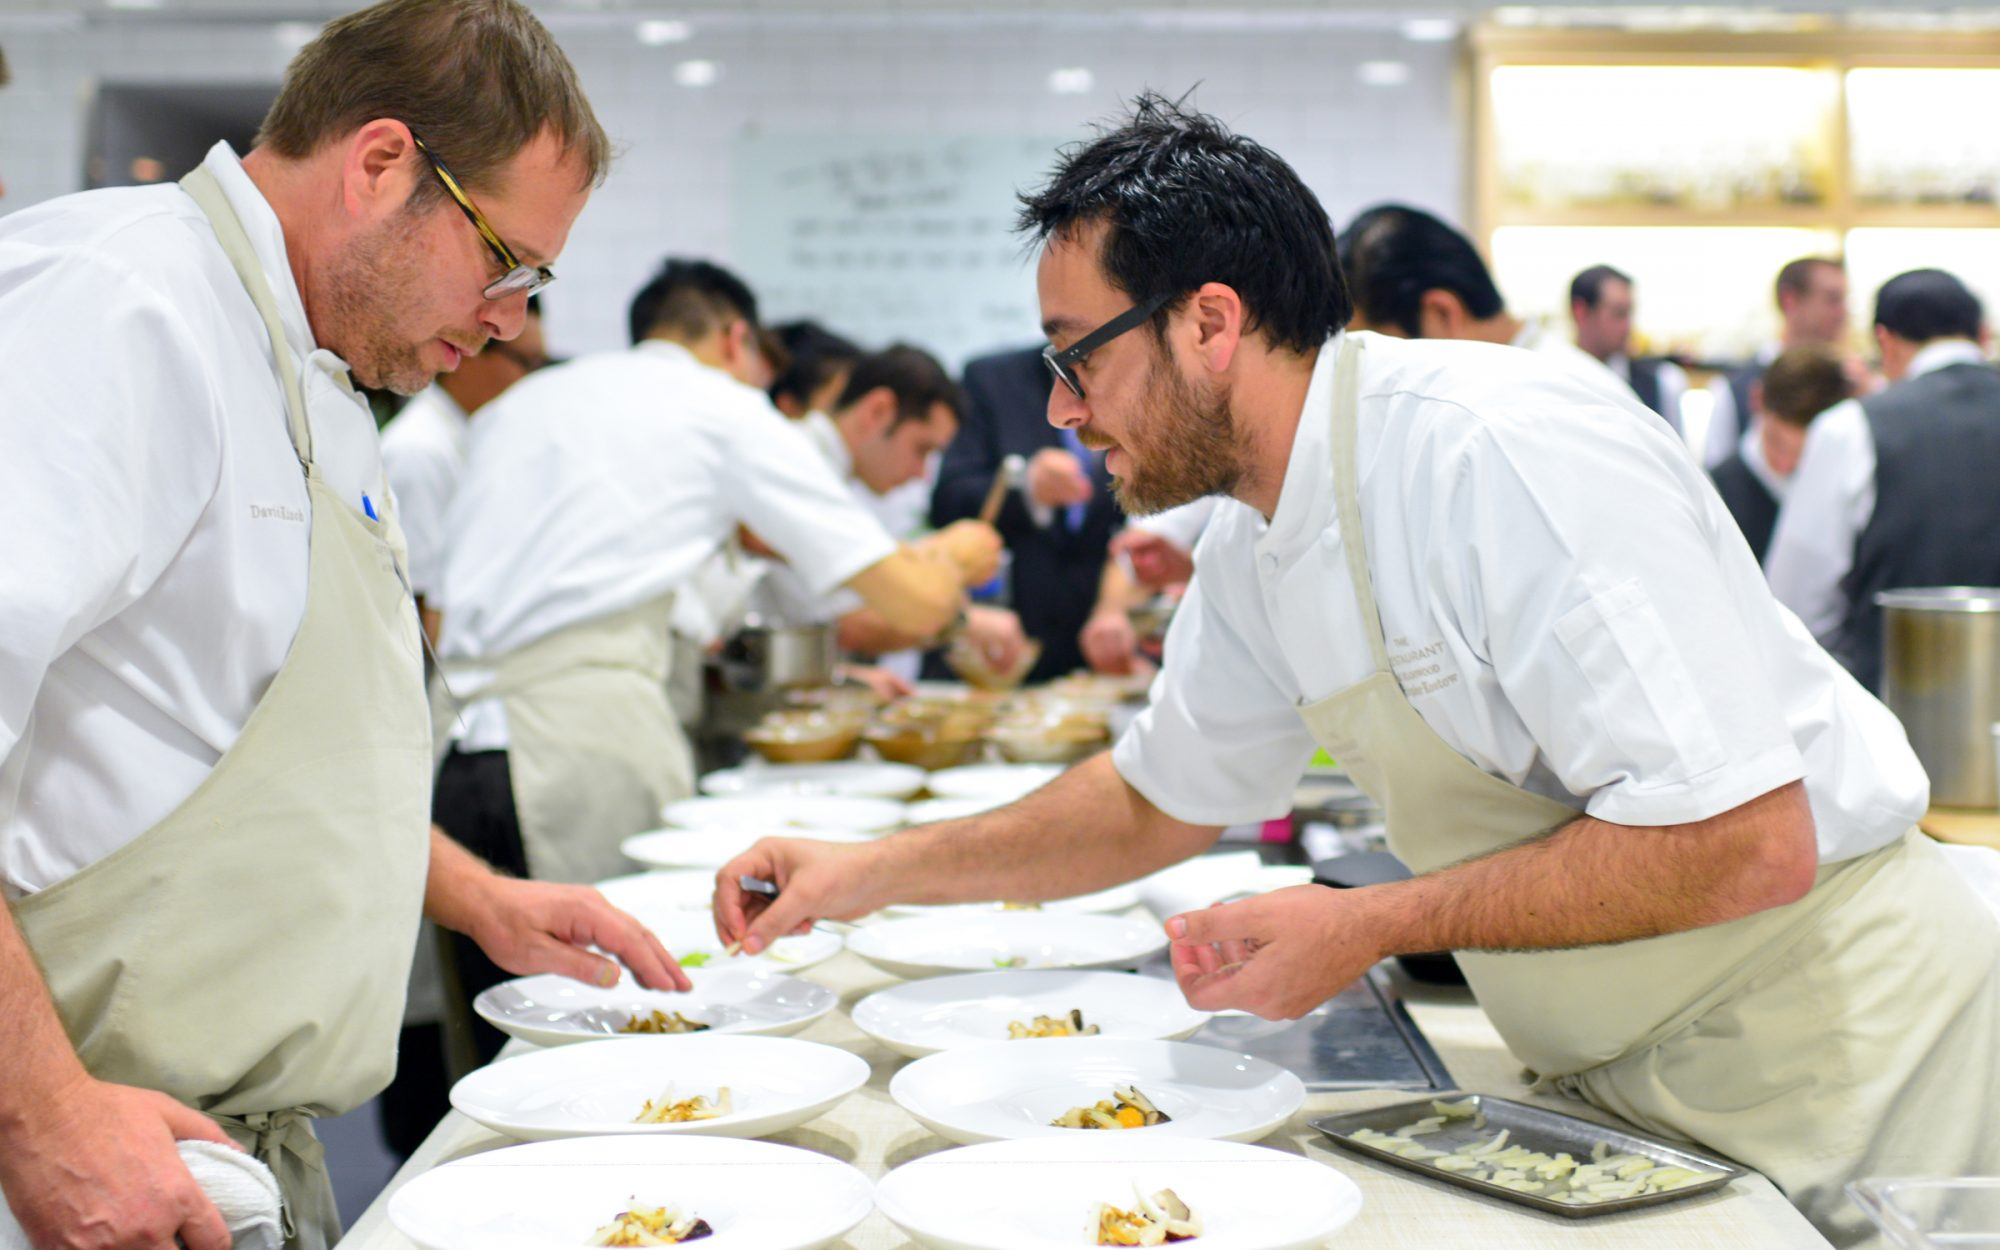 The Restaurant at Meadowood's 12 Days of Christmas Dinners